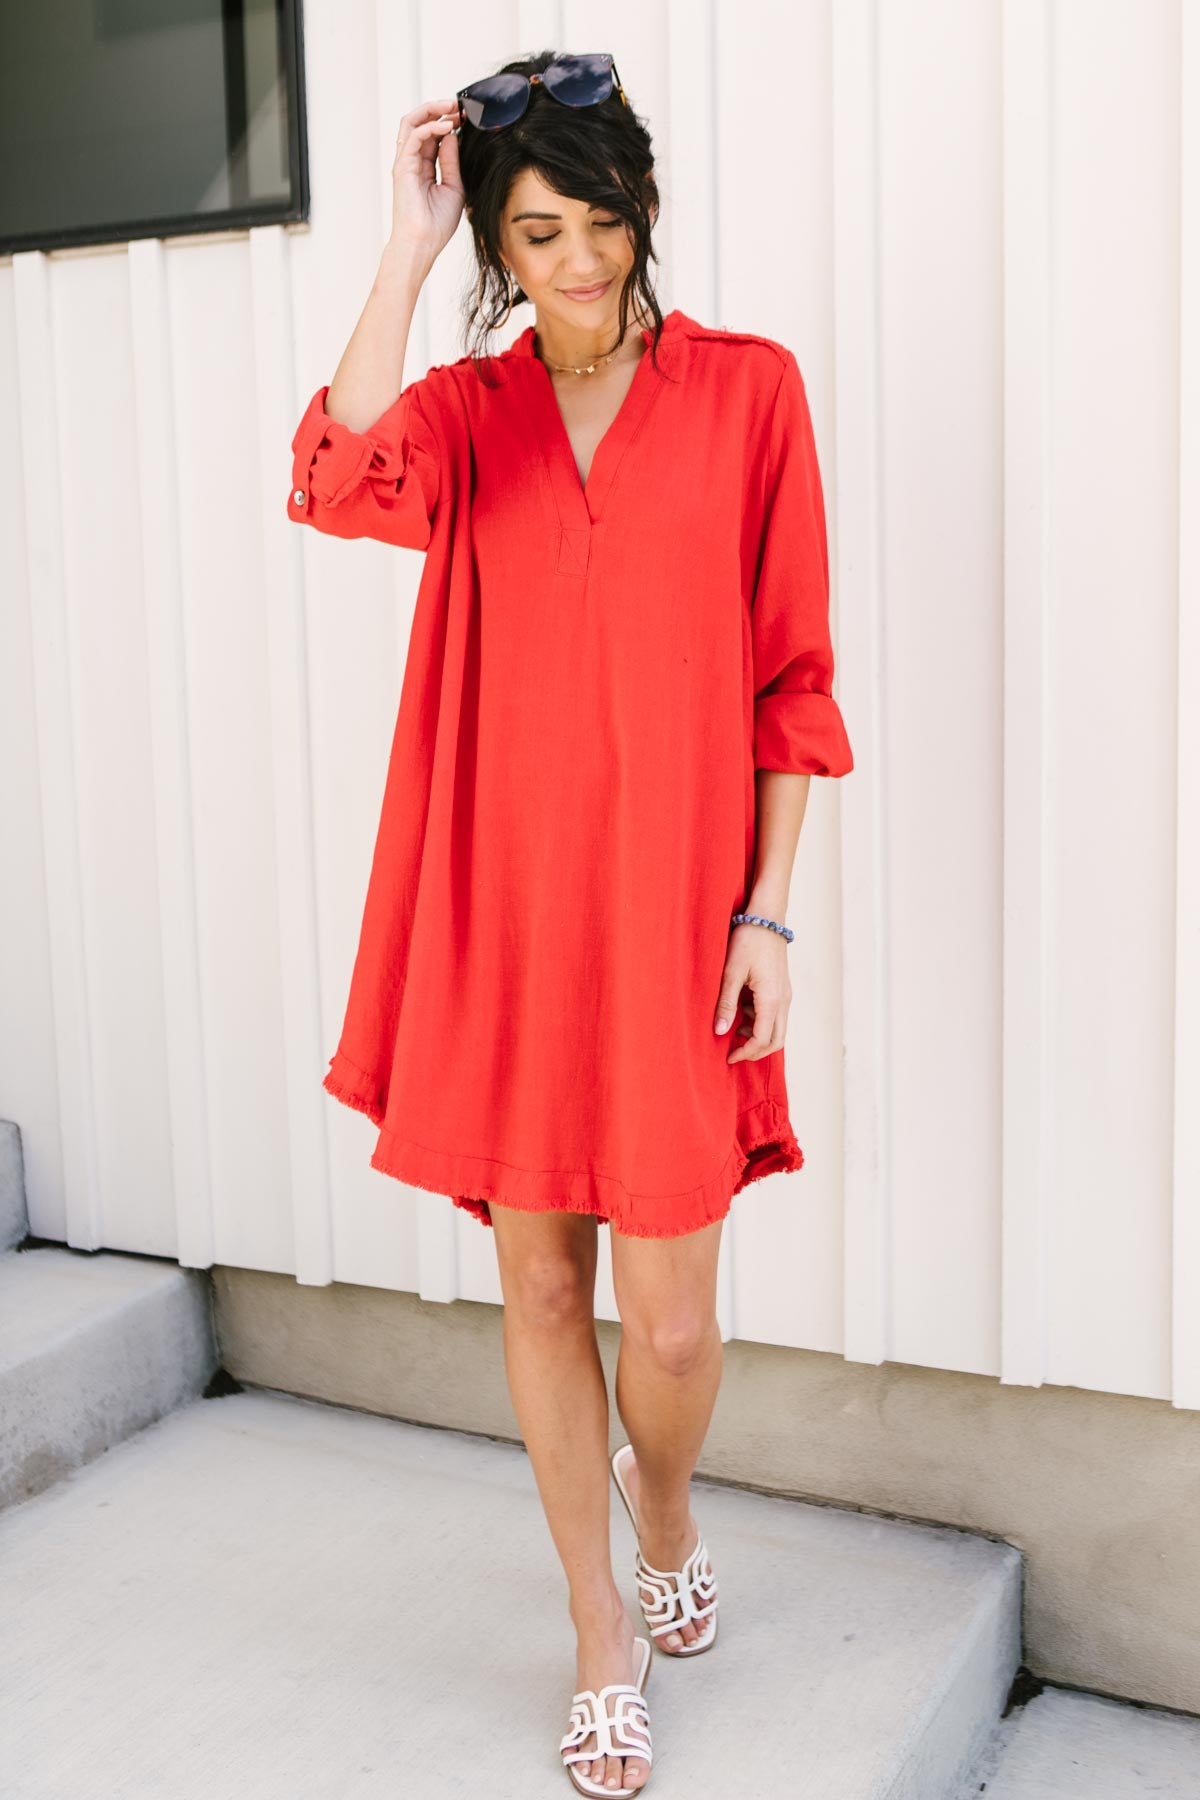 Fireside Chats Dress-Ave Shops-Avis Lane Boutique-Justin, Texas